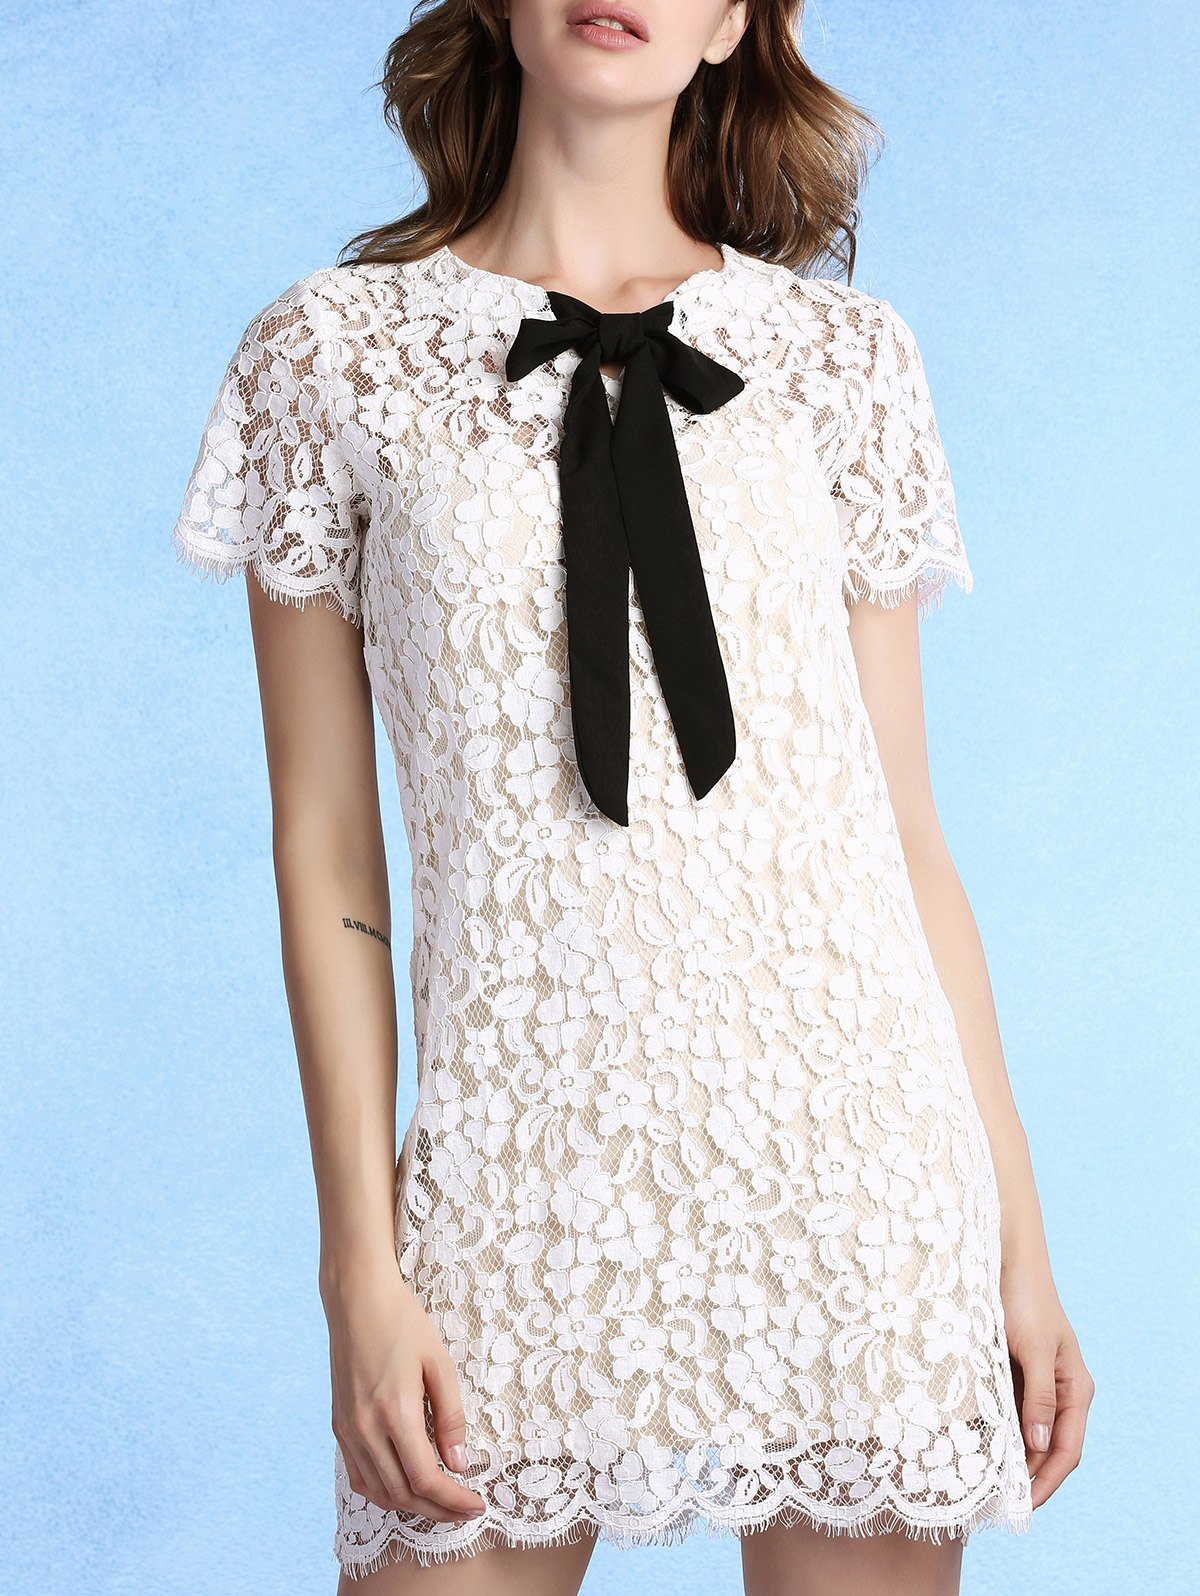 Sweet Cami Top + Bow Tie Neck Lace Dress Women's Twinset - WHITE 2XL